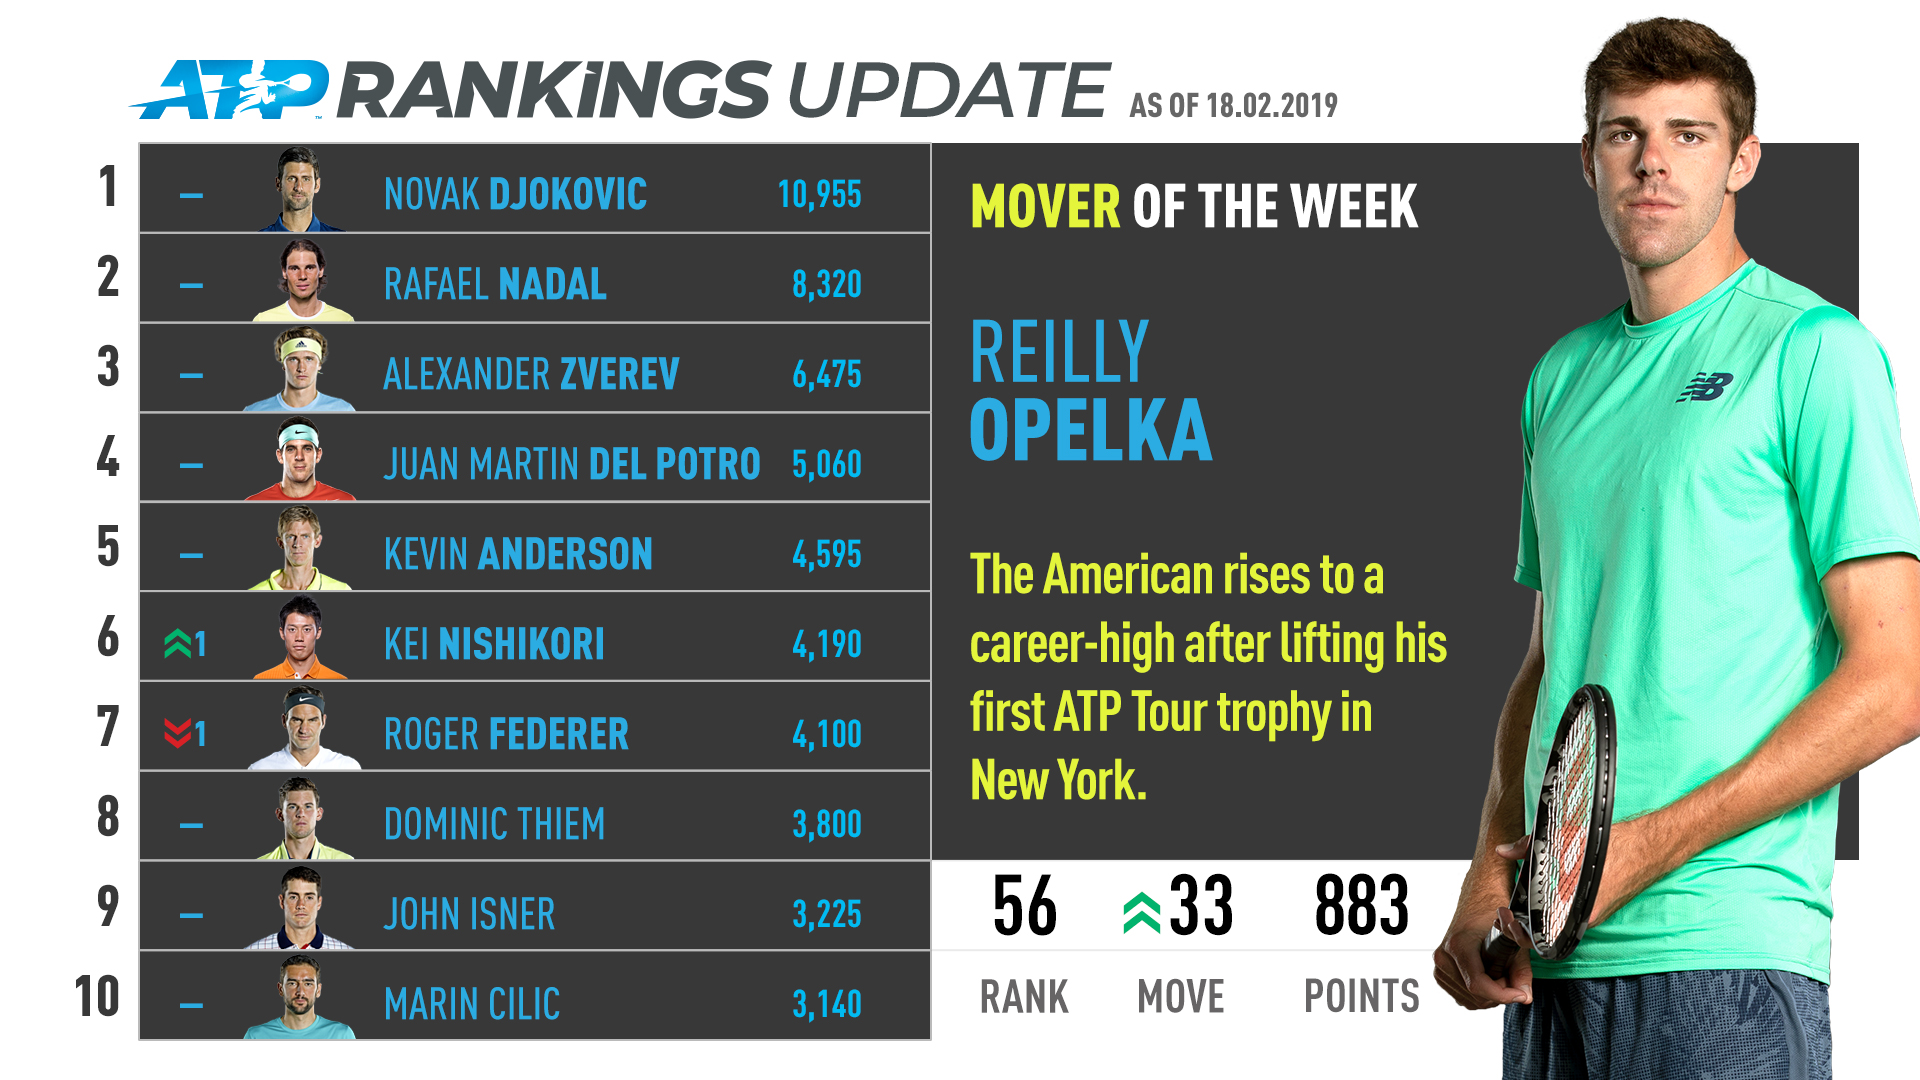 Opelka, ATP Rankings, New York